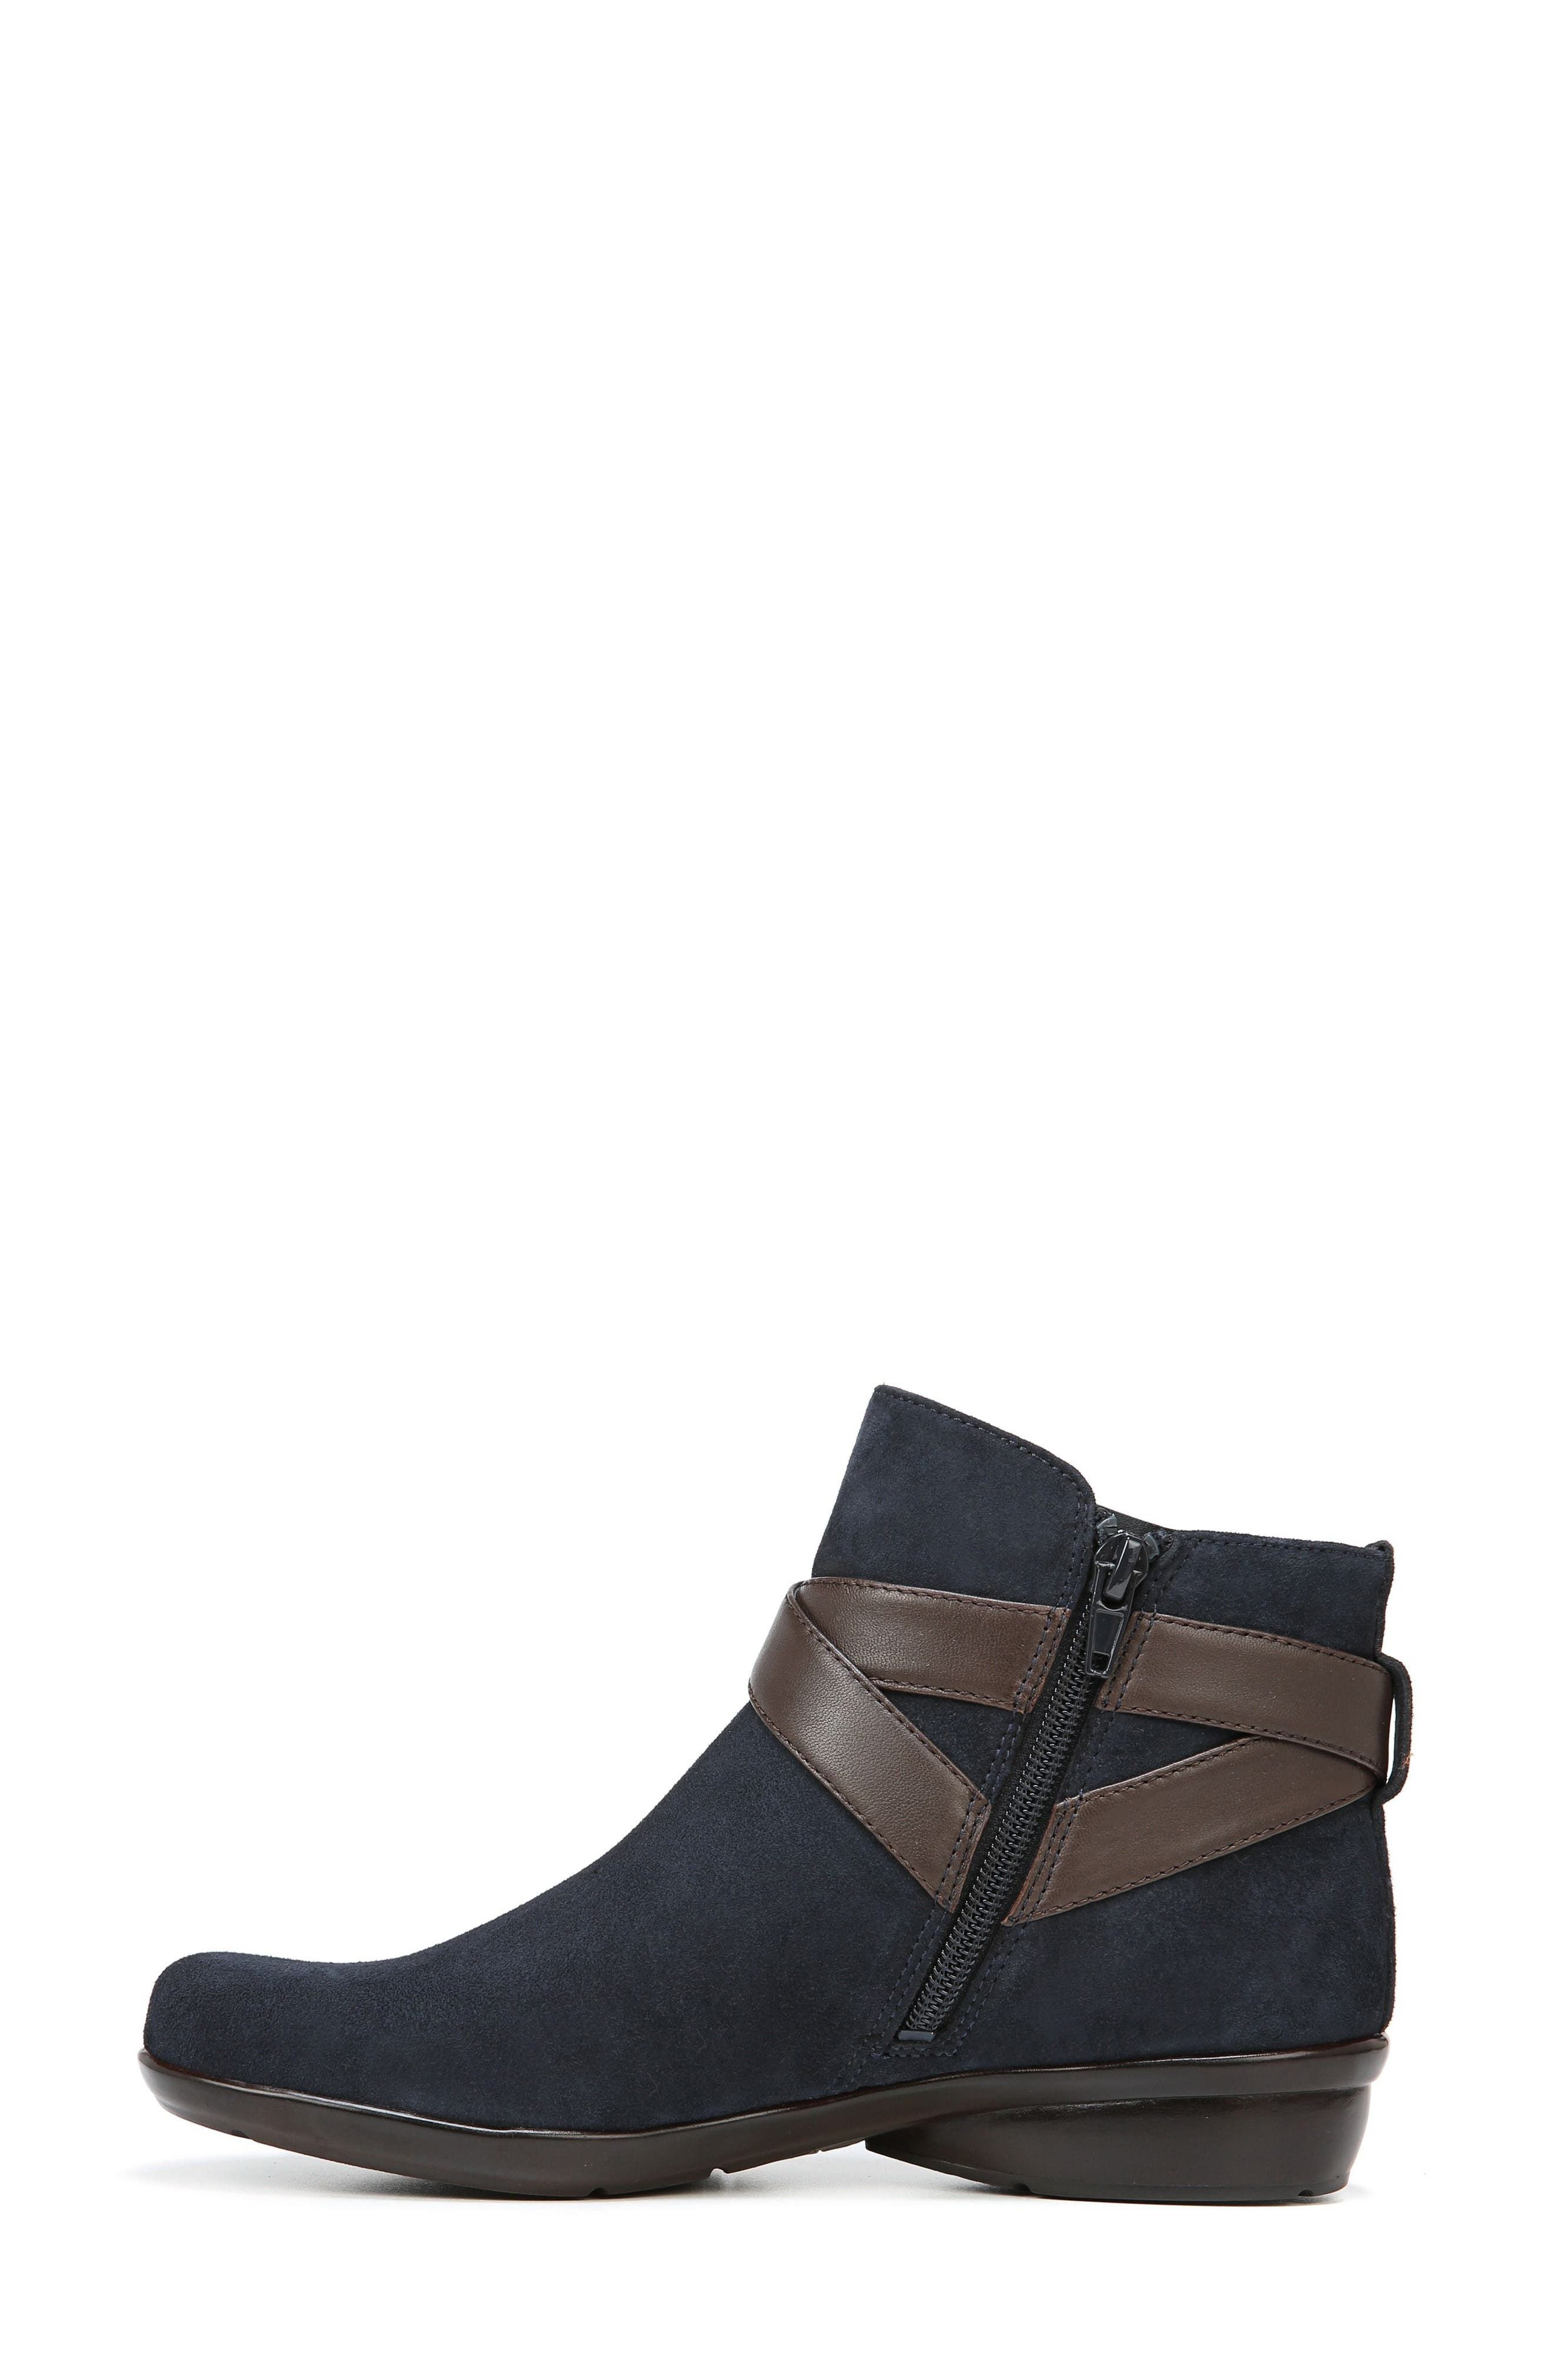 Cassandra Buckle Strap Bootie,                             Alternate thumbnail 8, color,                             NAVY/ BROWN SUEDE